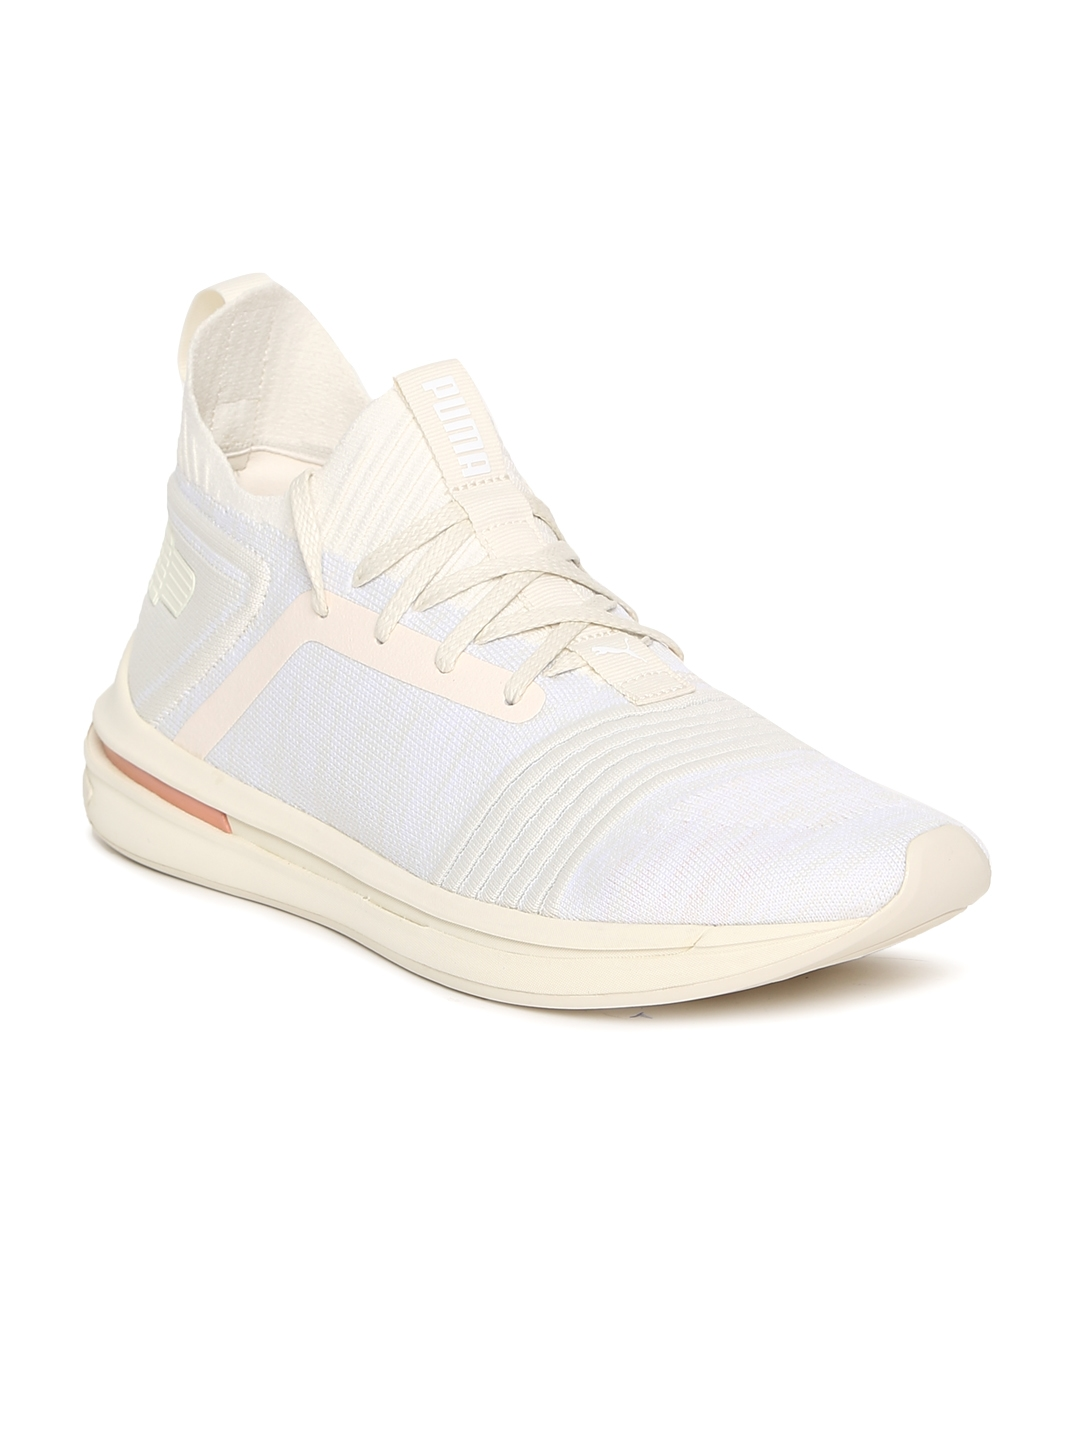 finest selection a6782 44227 Puma Men White IGNITE Limitless SR evoKNIT Sneakers